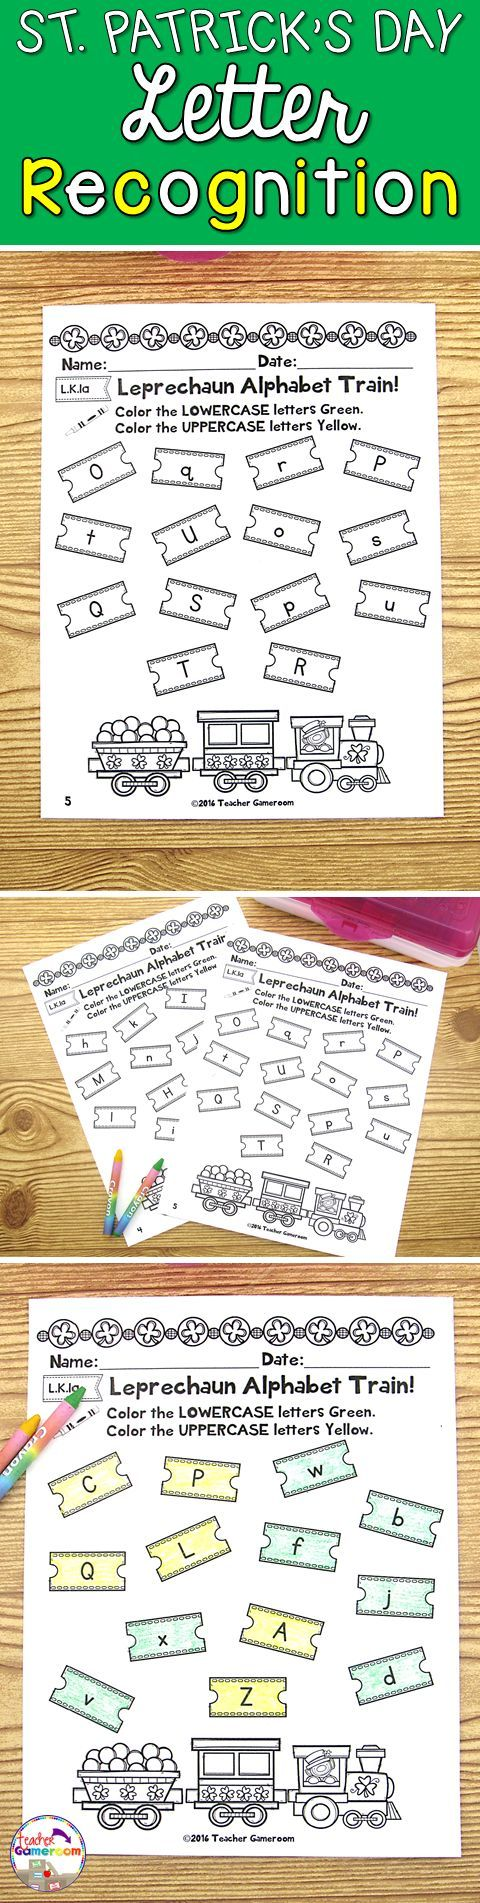 Students look at the train tickets and color the ticket. Students color lowercase letters green and uppercase letters yellow. Great for morning work or St. Patrick's Day activity. Common Core aligned.